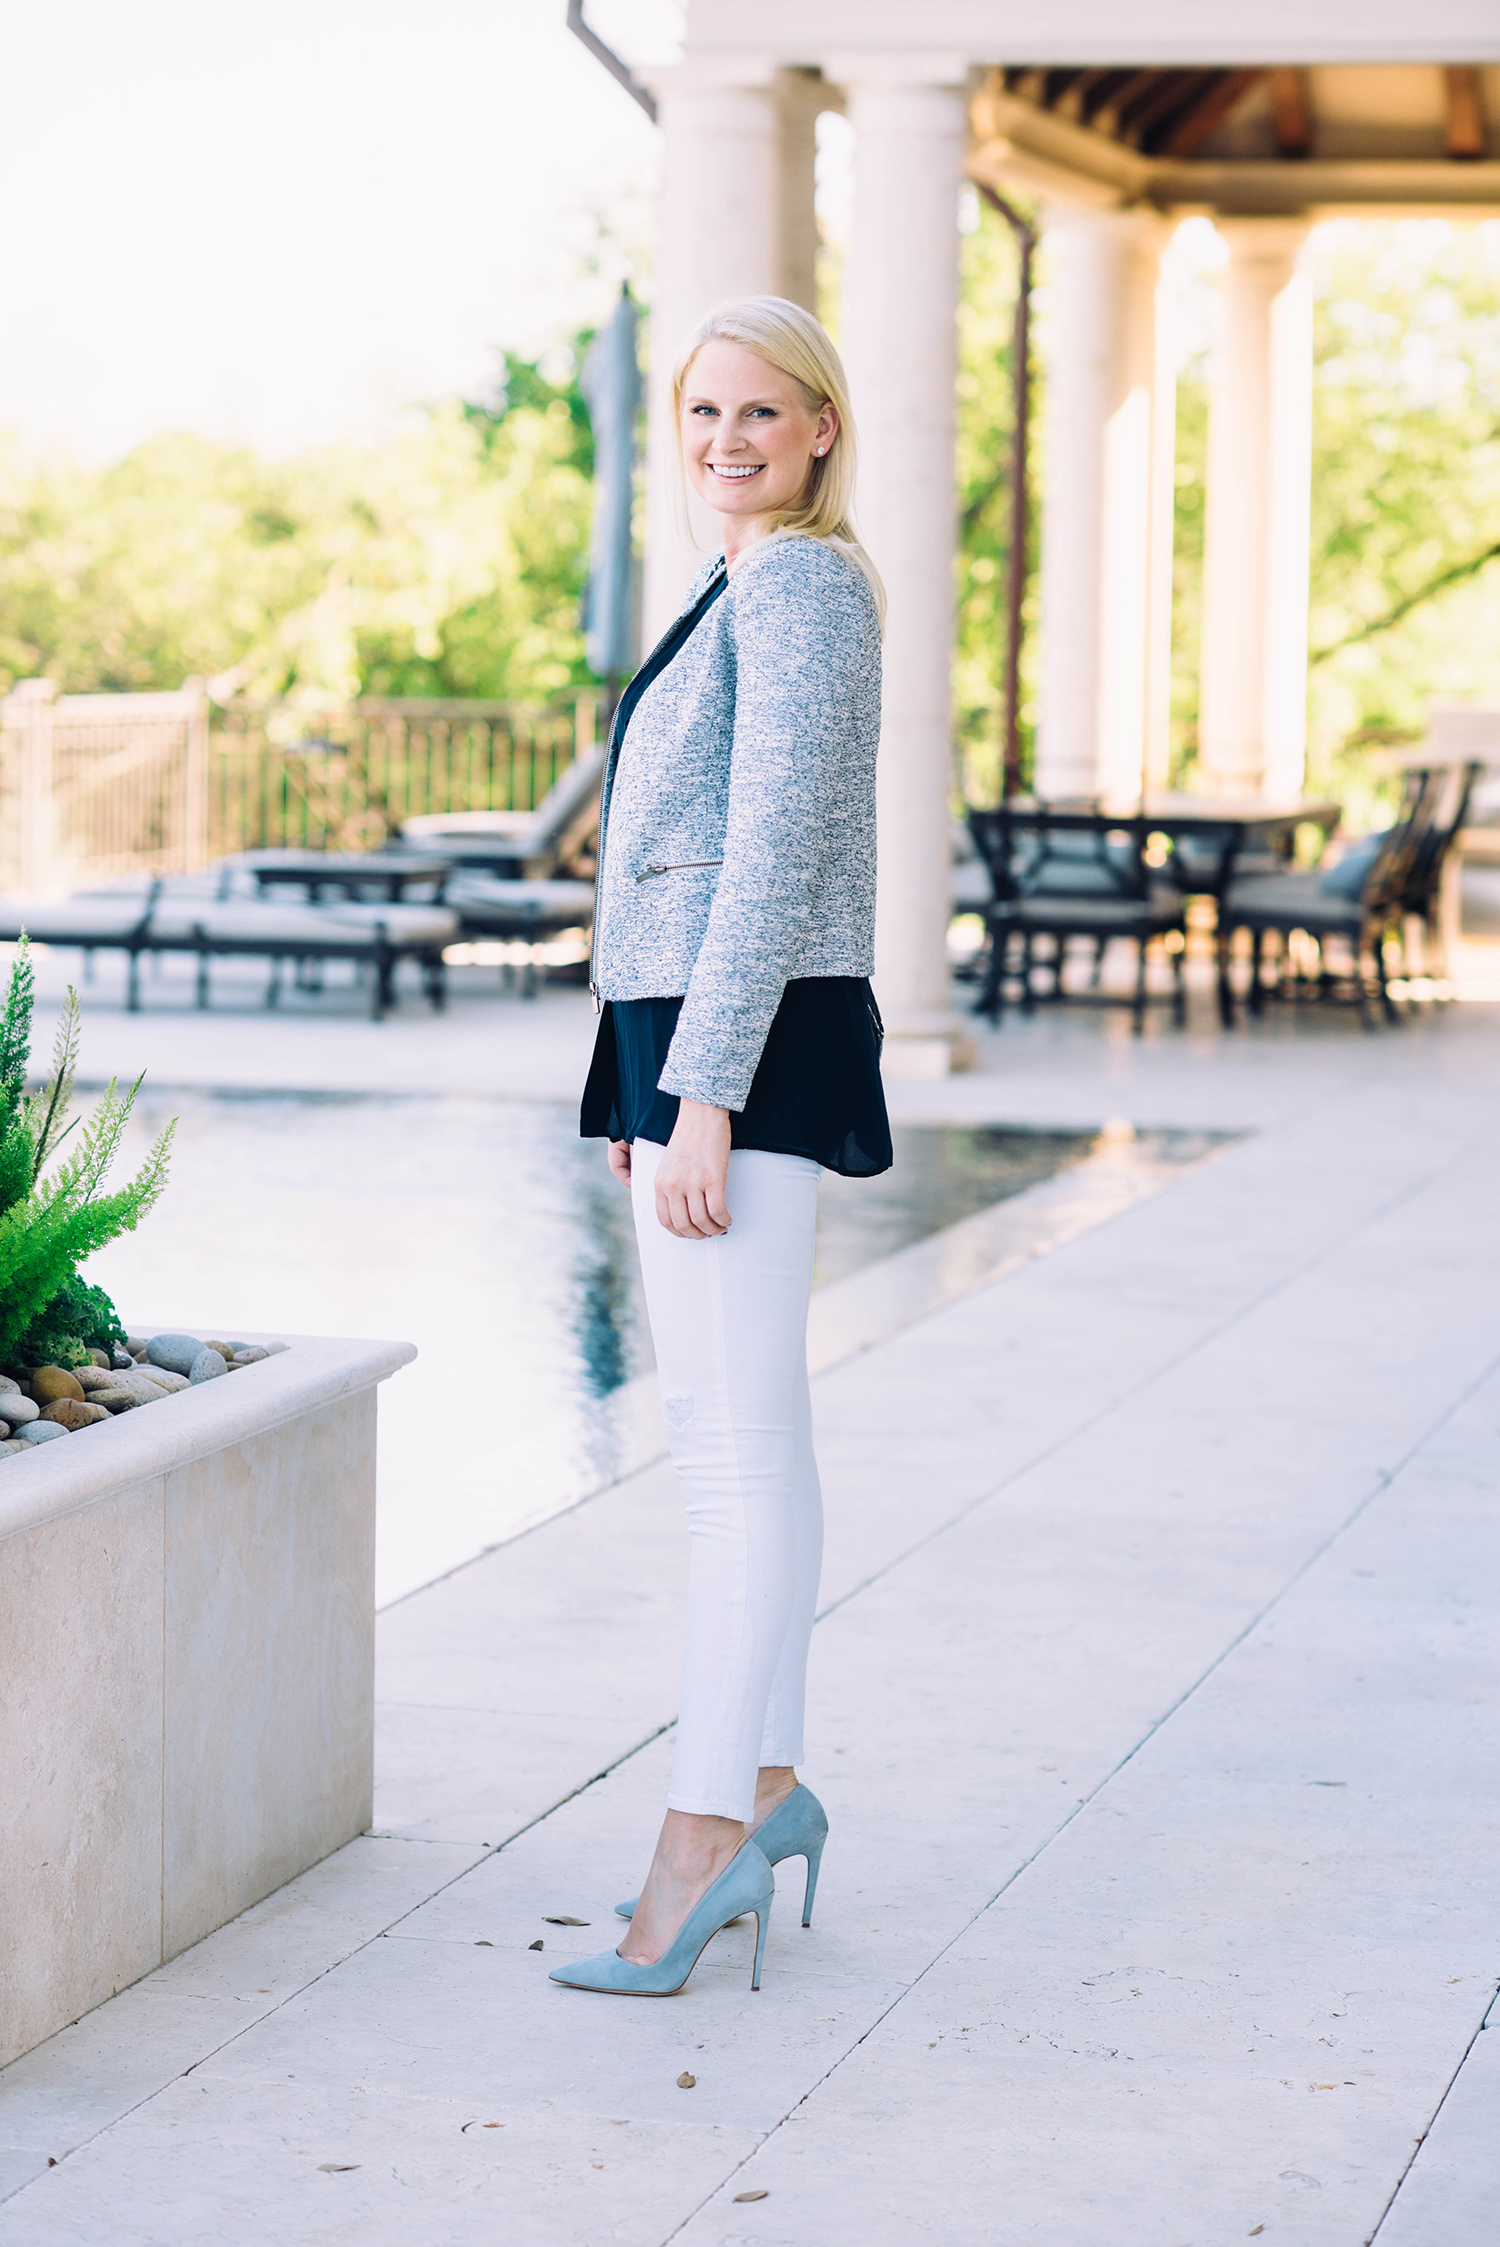 Shades of Blue | The Style Scribe